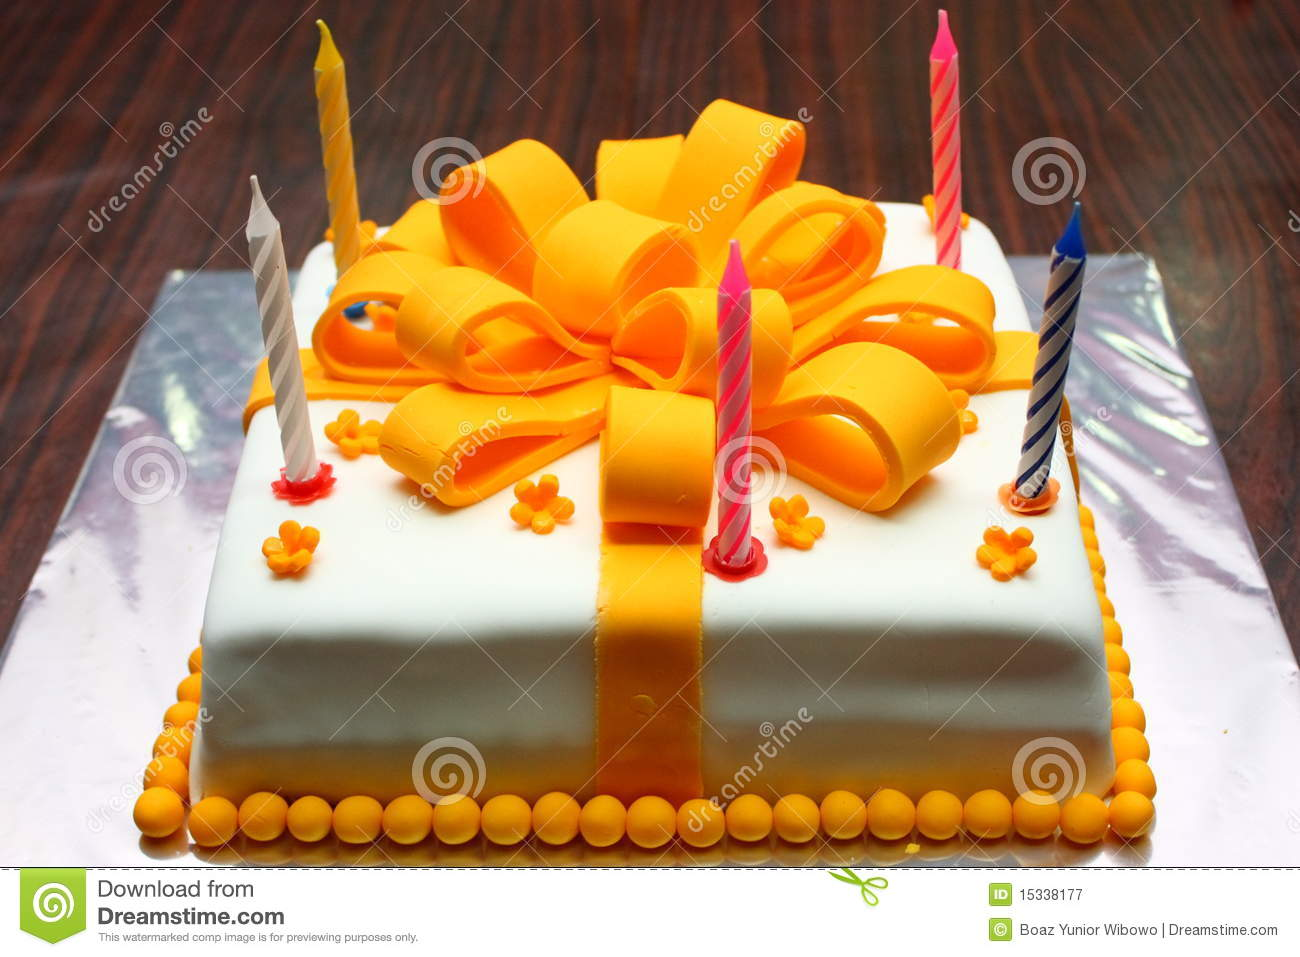 Birthday Cake White Orange With Candles Royalty Free Stock Photography